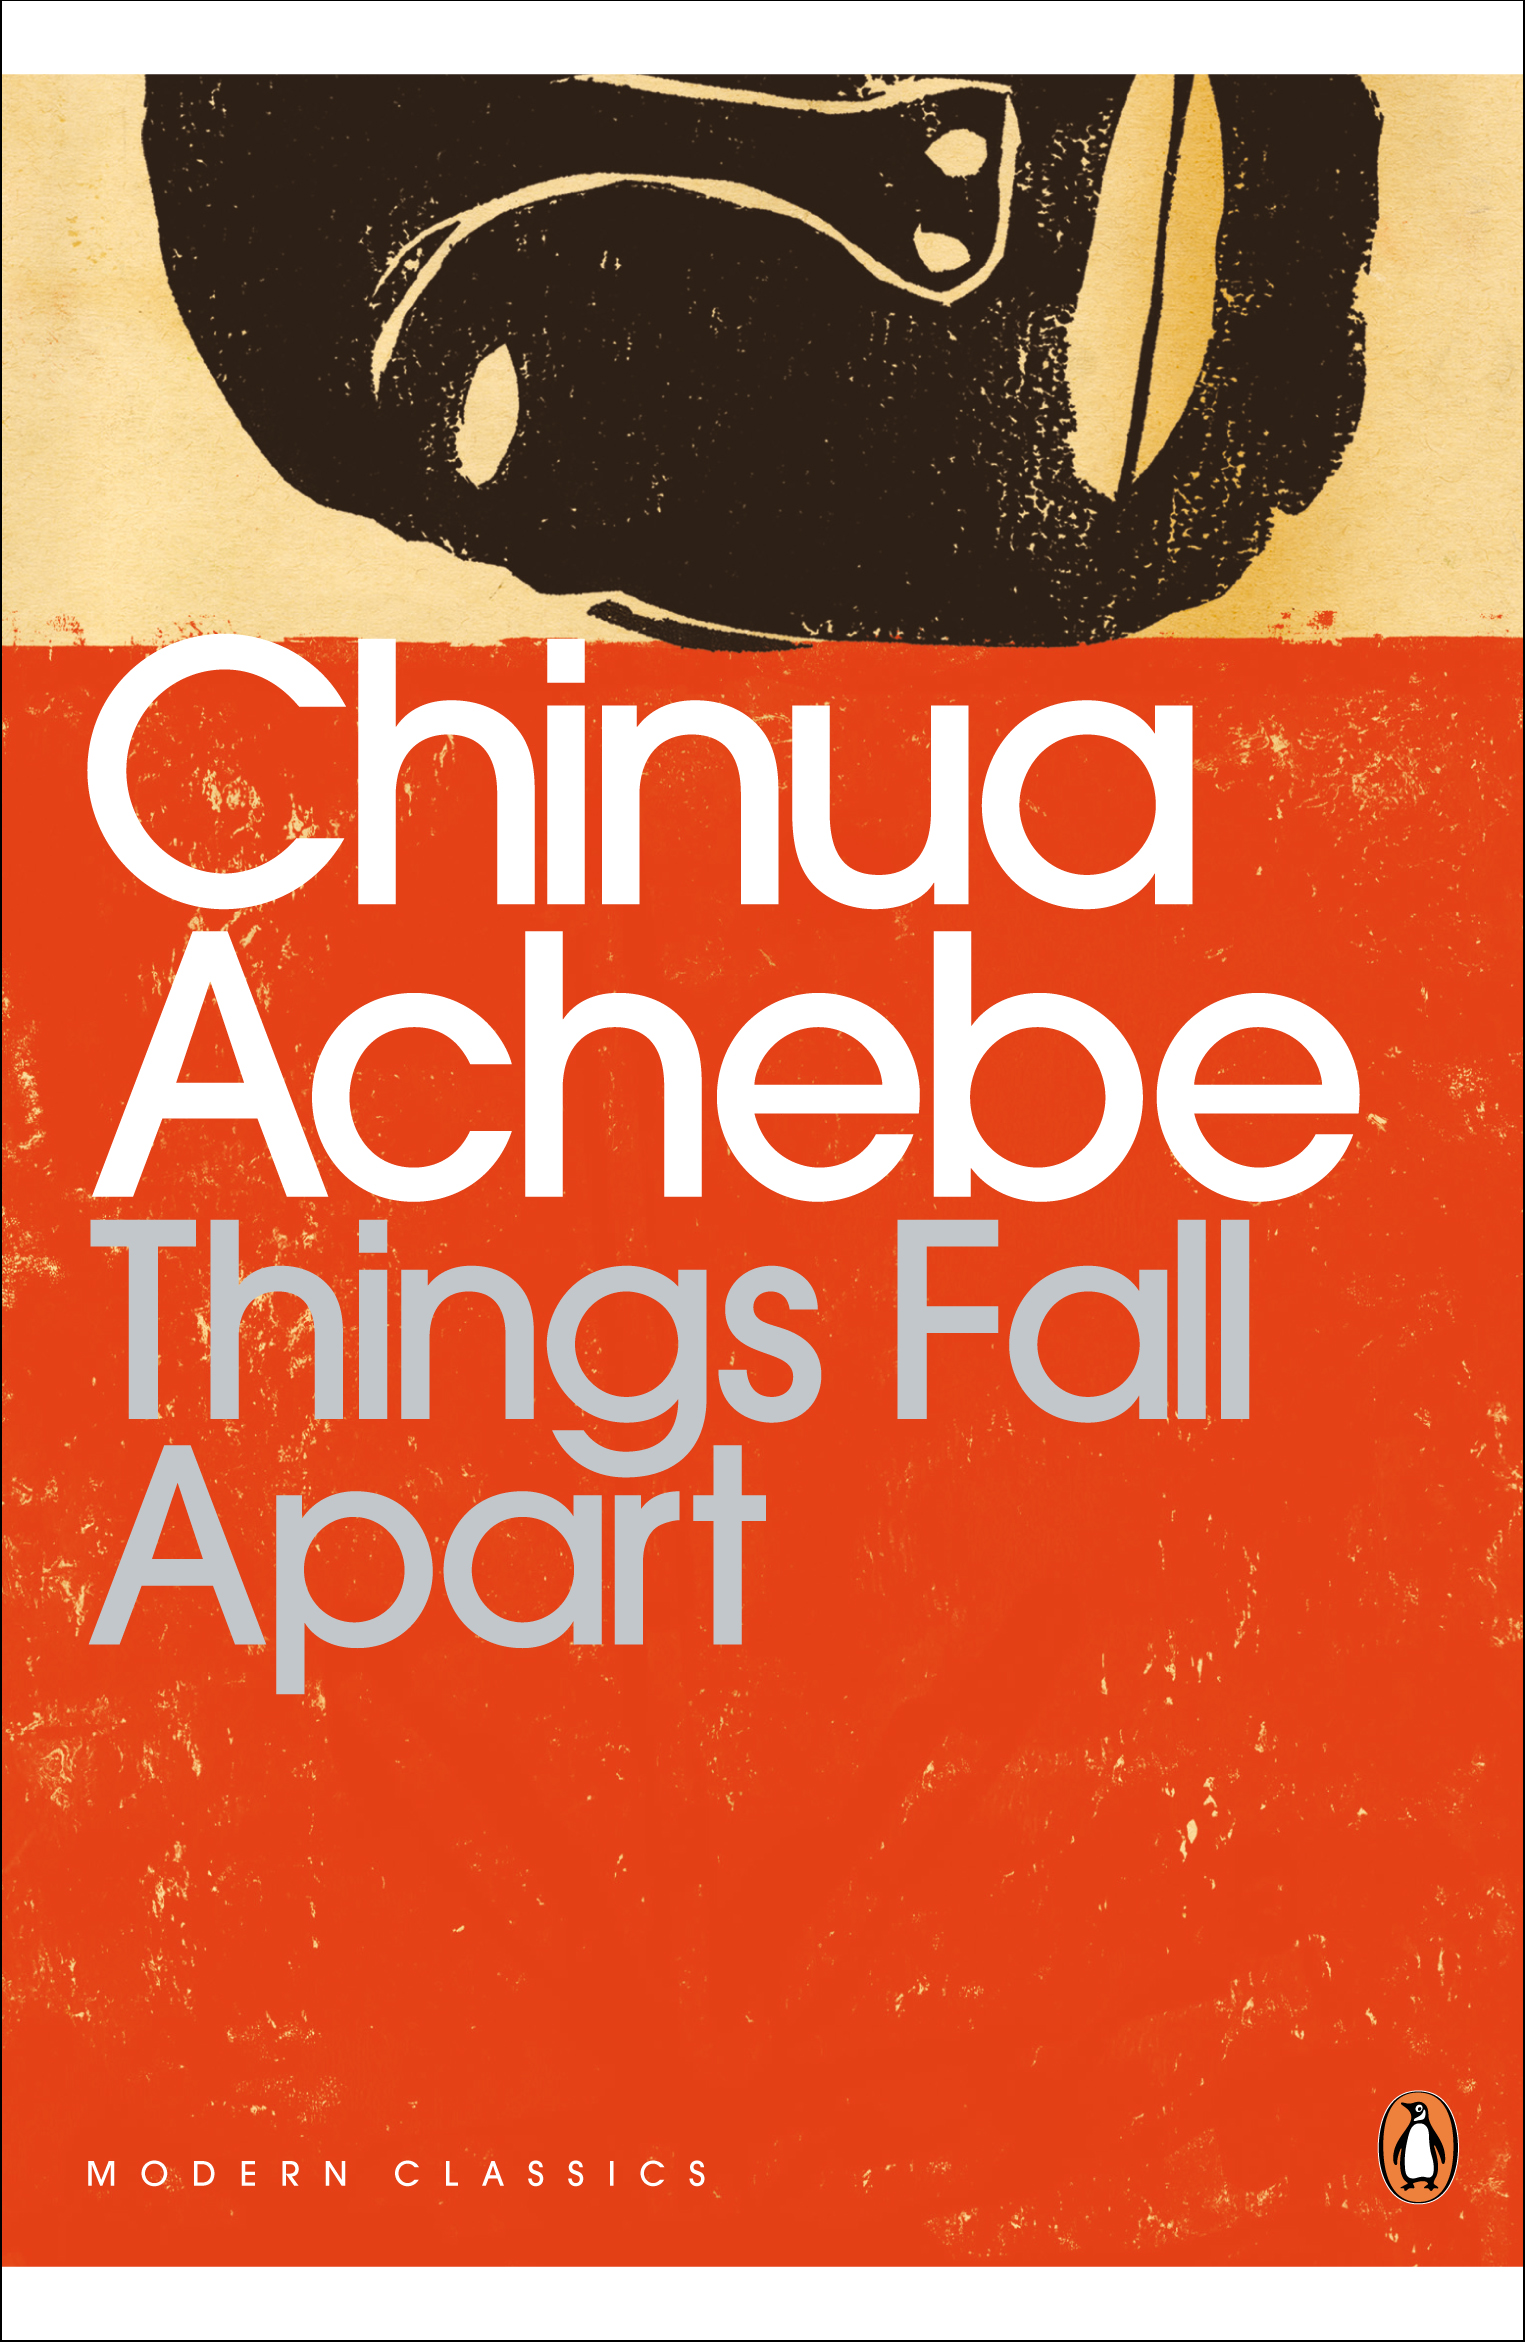 an analysis of imperialism in things fall apart by chinua achebe - chinua achebe's things fall apart is a story that describes the effects of a new christian religion in a tribal village of africa, called umuofia the novel is set during the late 1800s to early 1900s when the british were expanding their influence in africa, economically, culturally, religiously, and politically.